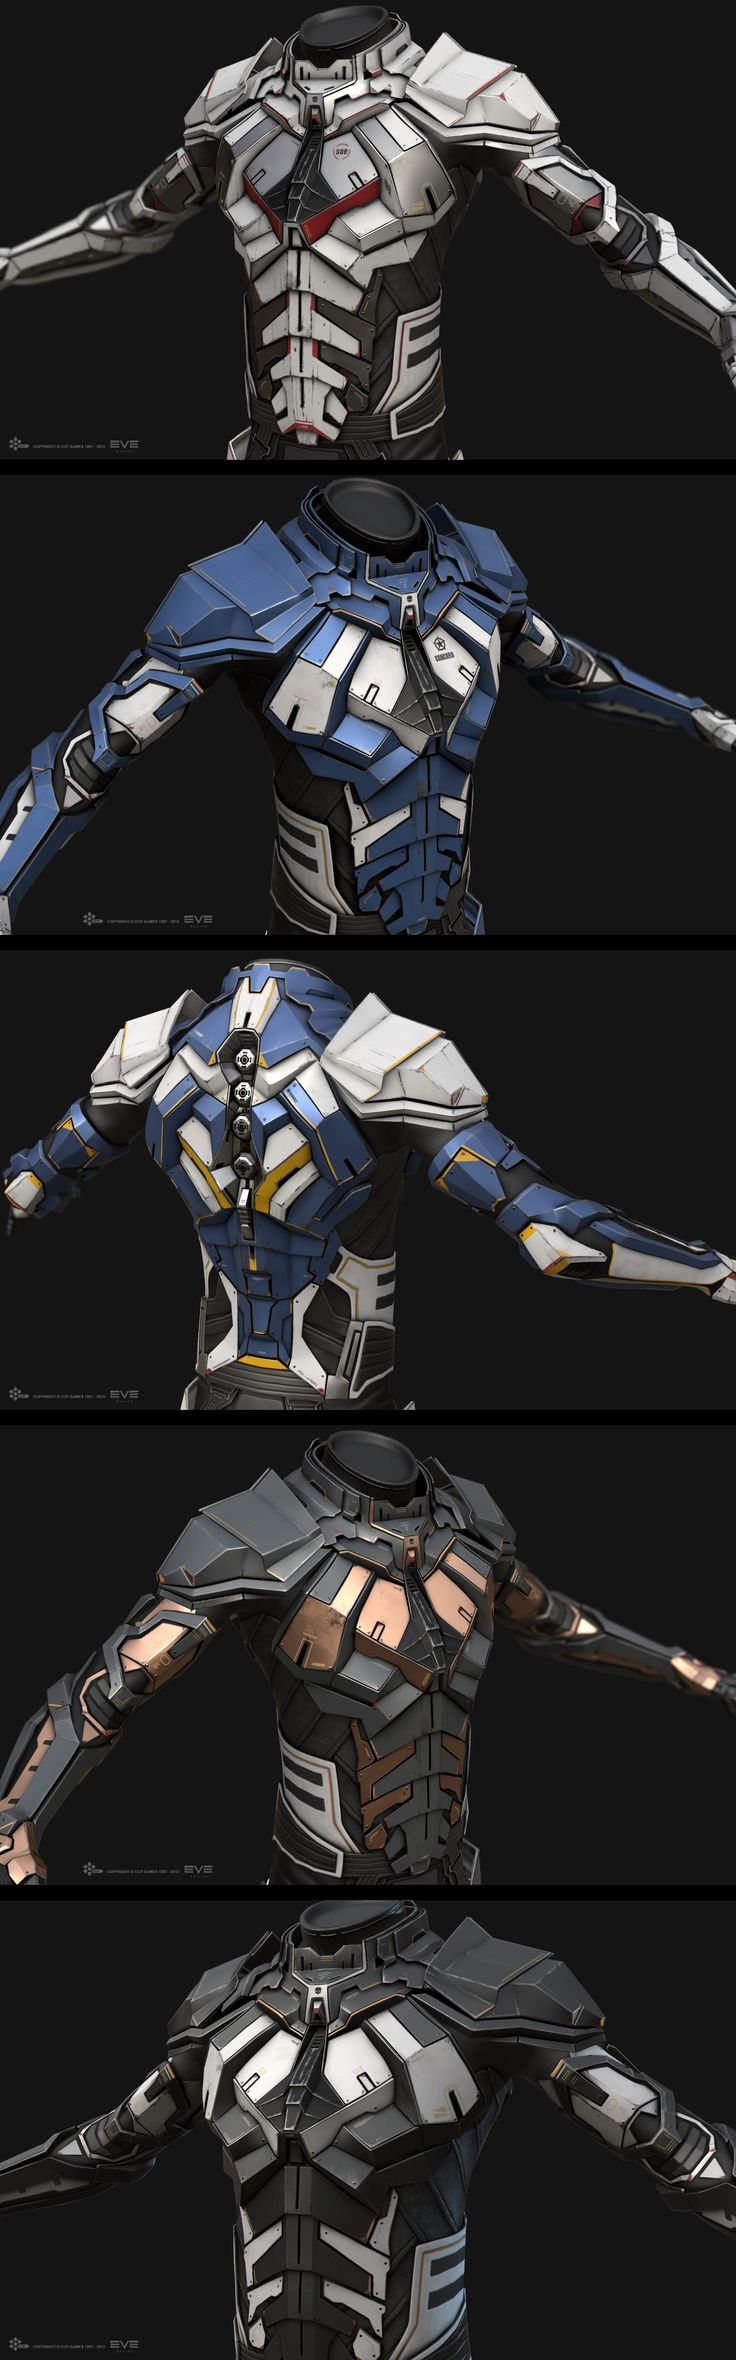 http://bokaja.cgsociety.org/art/eve-maya-online-substance-combat-painter-suit-marmoset-science-toolbag-fiction-sci-fi-space-minmatar-high-tech-armor-real-time-02-1415895 - Possible armor ideas for Southern Faction.